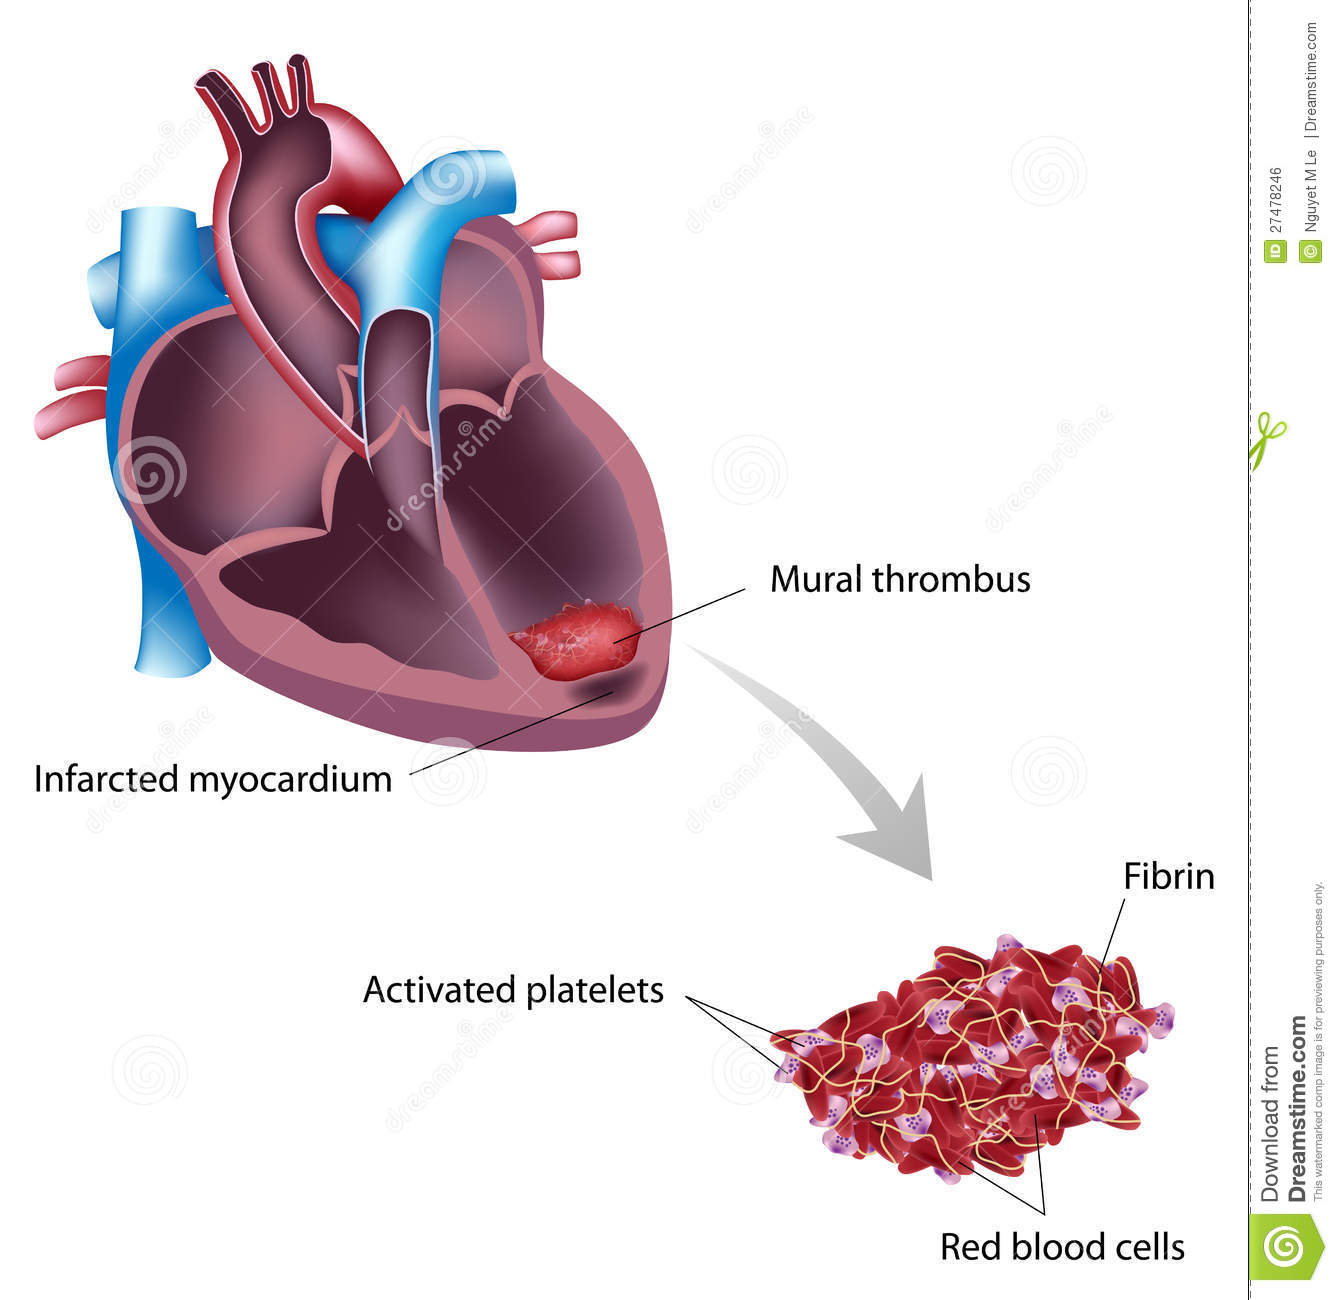 Mural thrombus royalty free stock image image 27478246 for Mural thrombus aorta